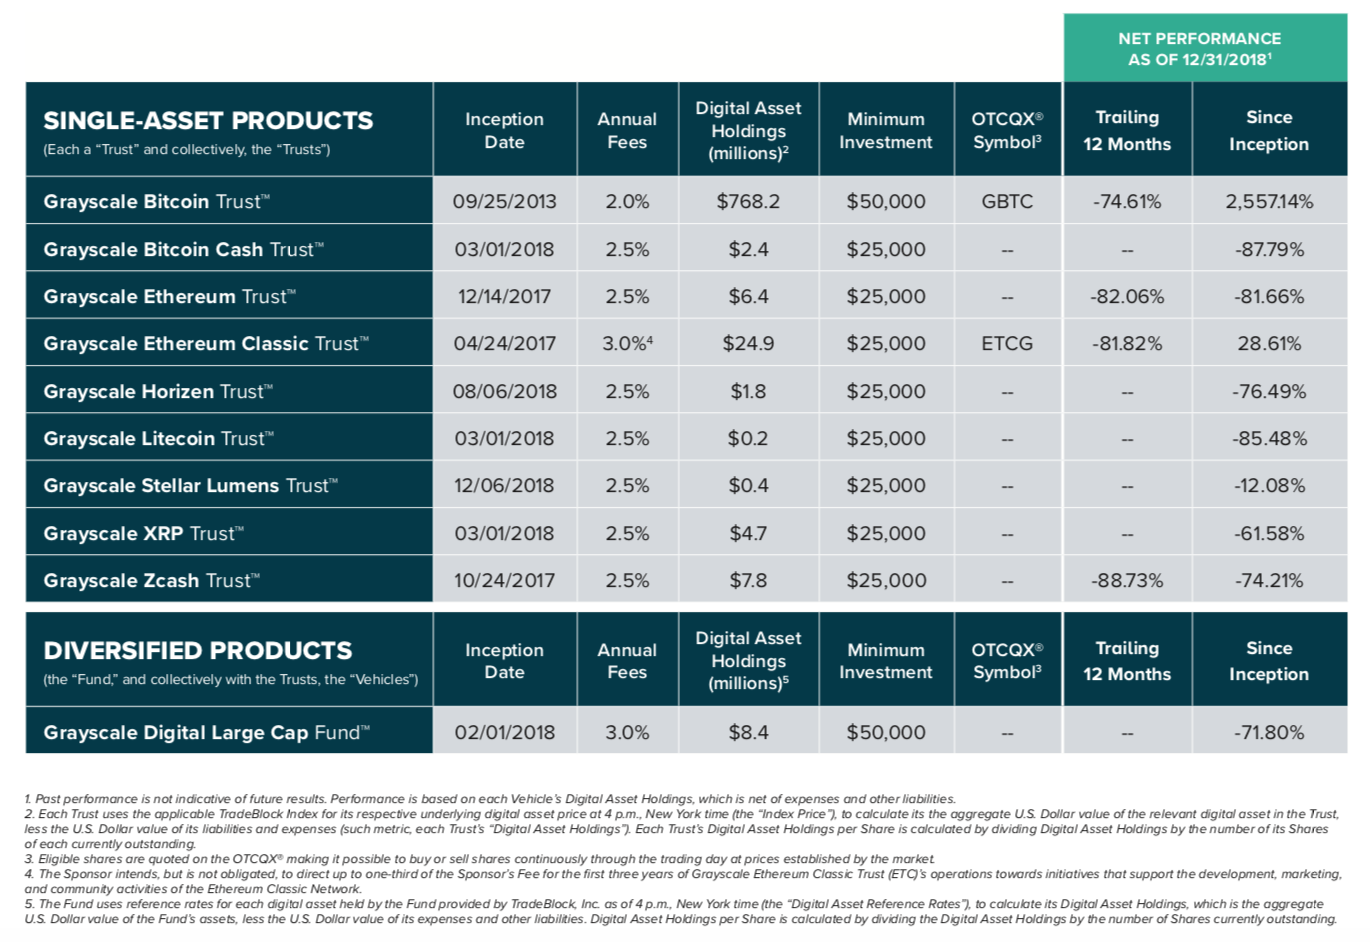 Single Asset Products Table